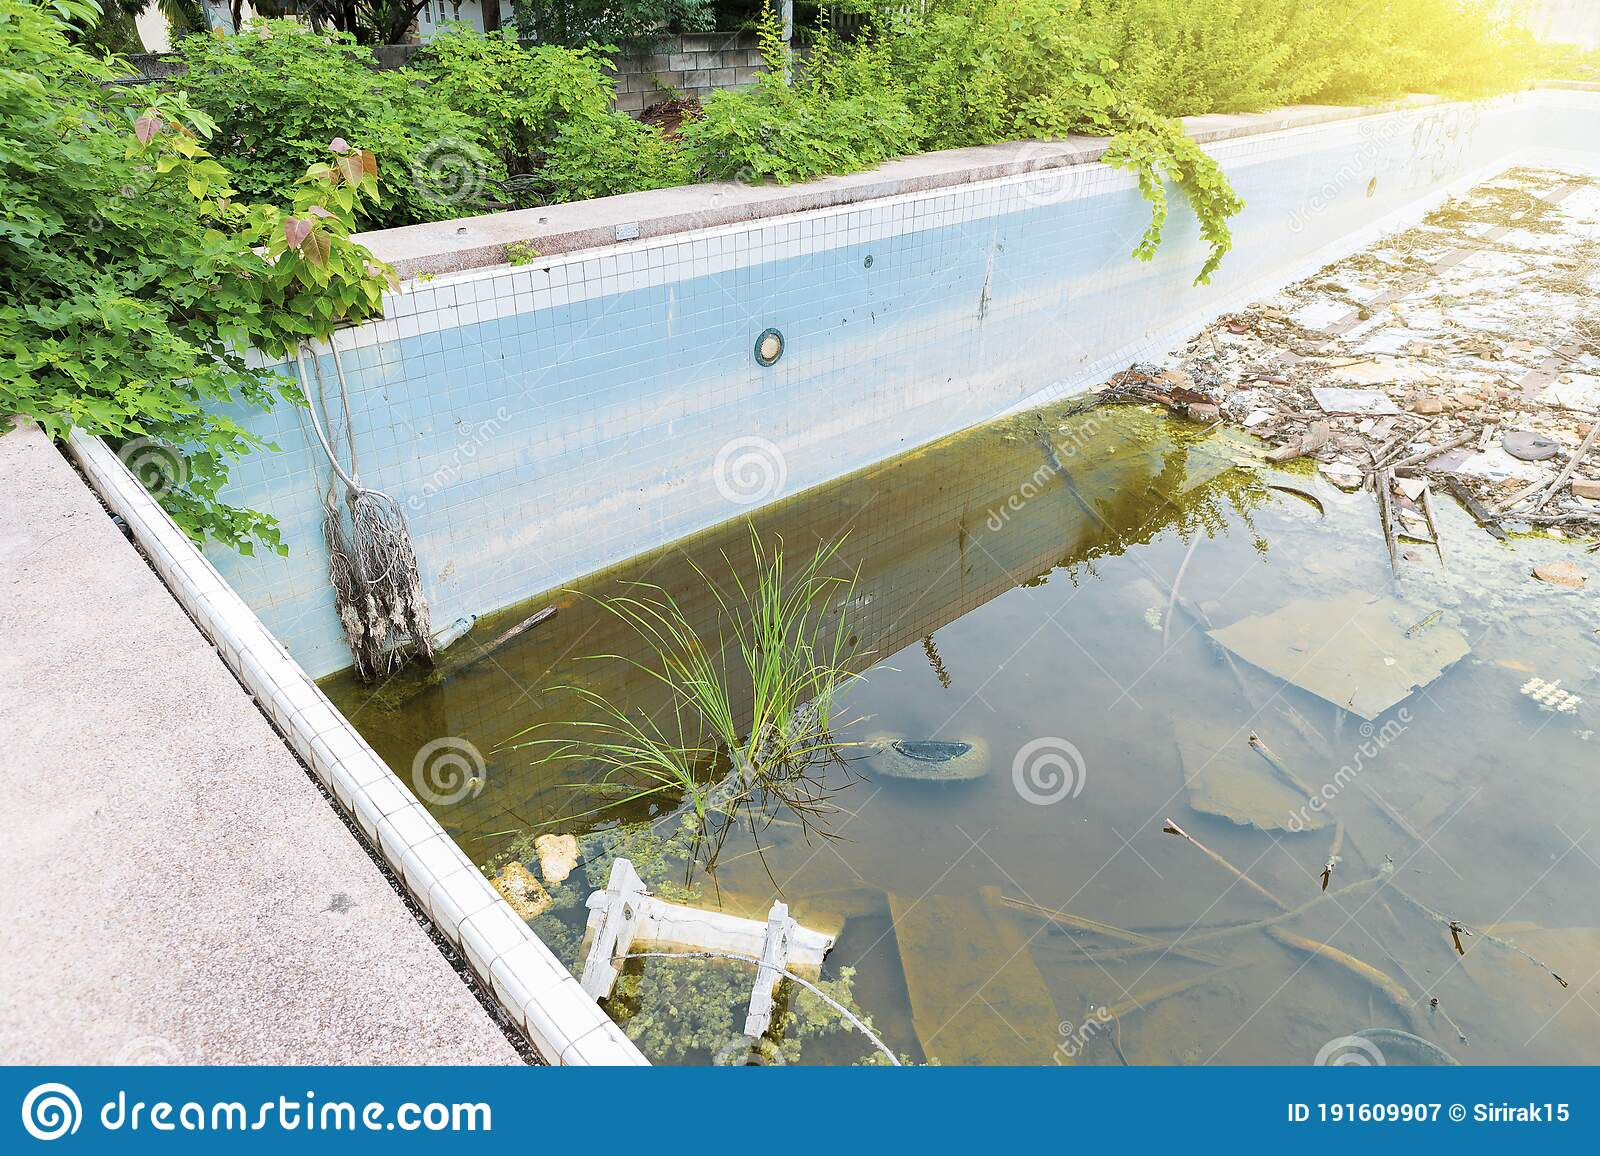 1 681 Outdoor Public Swimming Pool Photos Free Royalty Free Stock Photos From Dreamstime